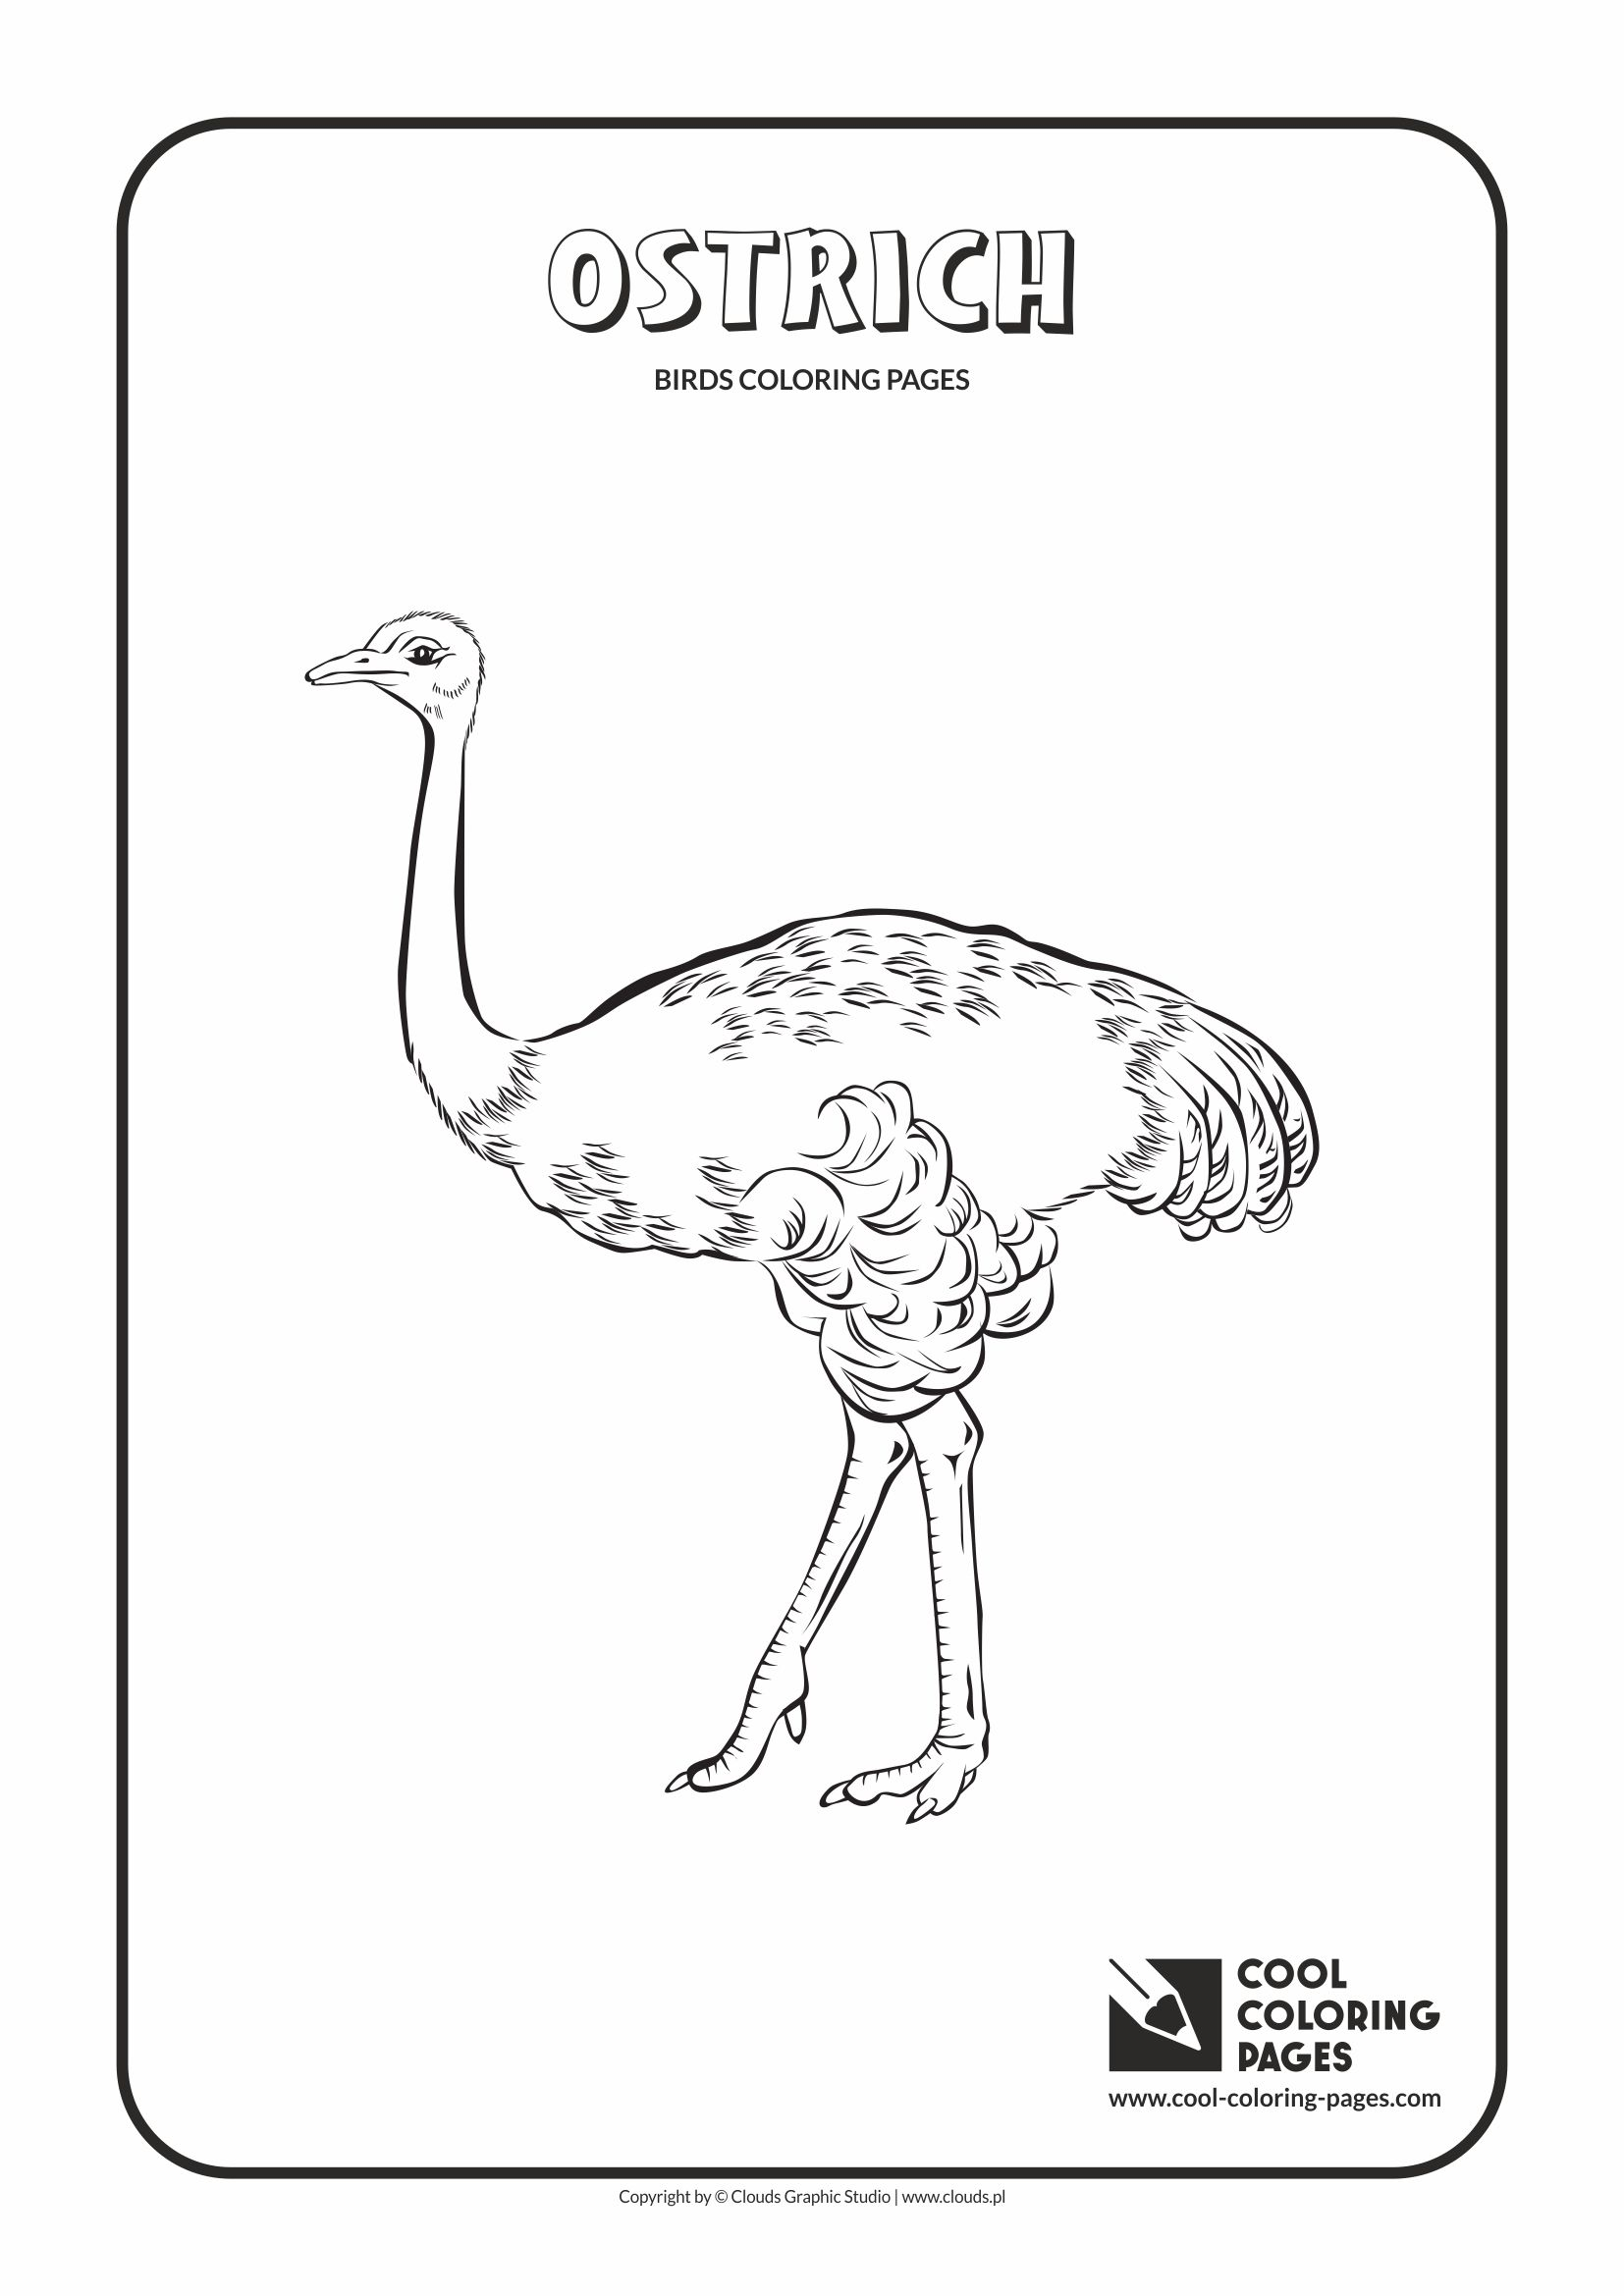 Cool Coloring Pages - Animals / Ostrich / Coloring page with ostrich